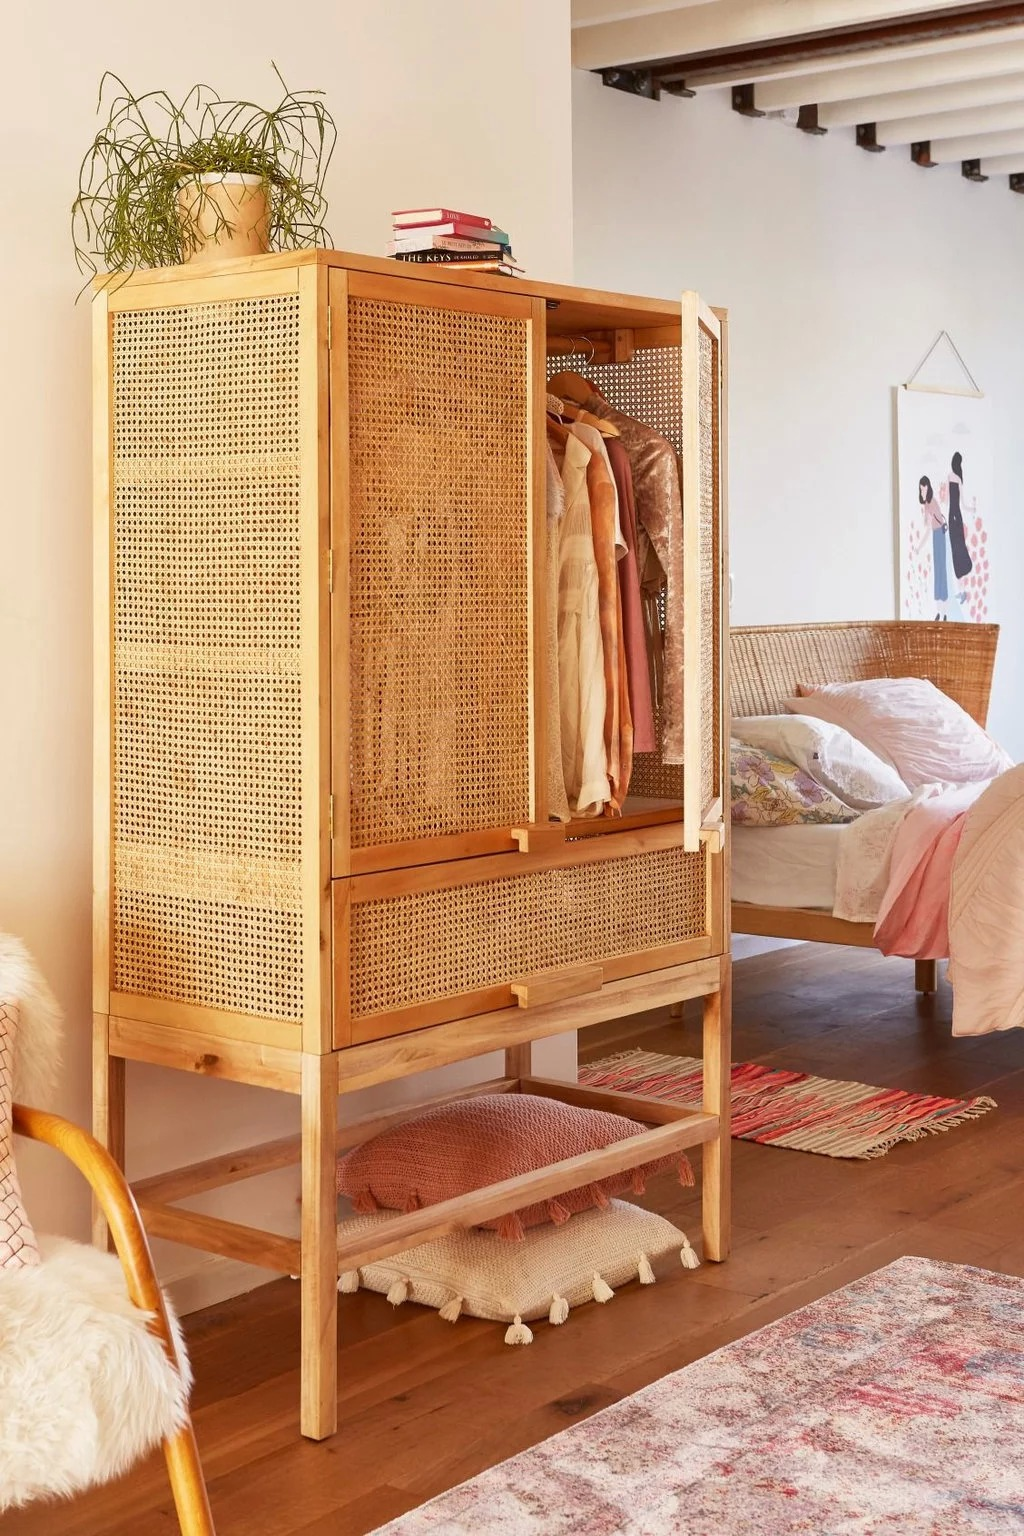 garde robe deco chambre cannage